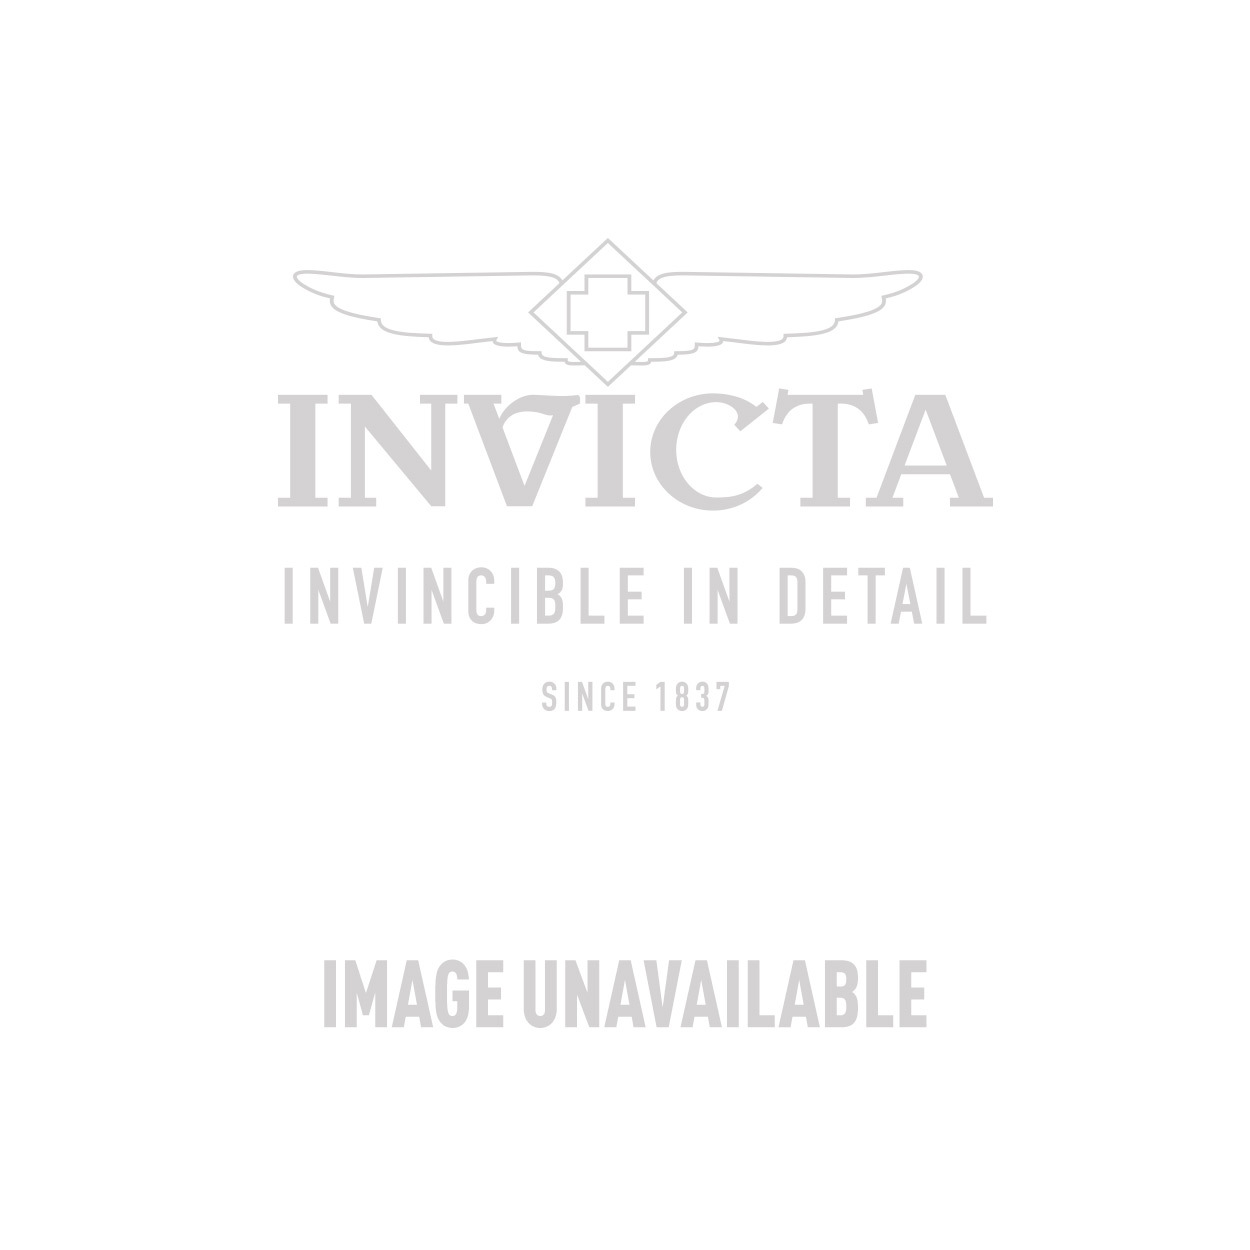 Invicta I-Force Quartz Watch - Black, Stainless Steel case with Black tone Silicone band - Model 16918